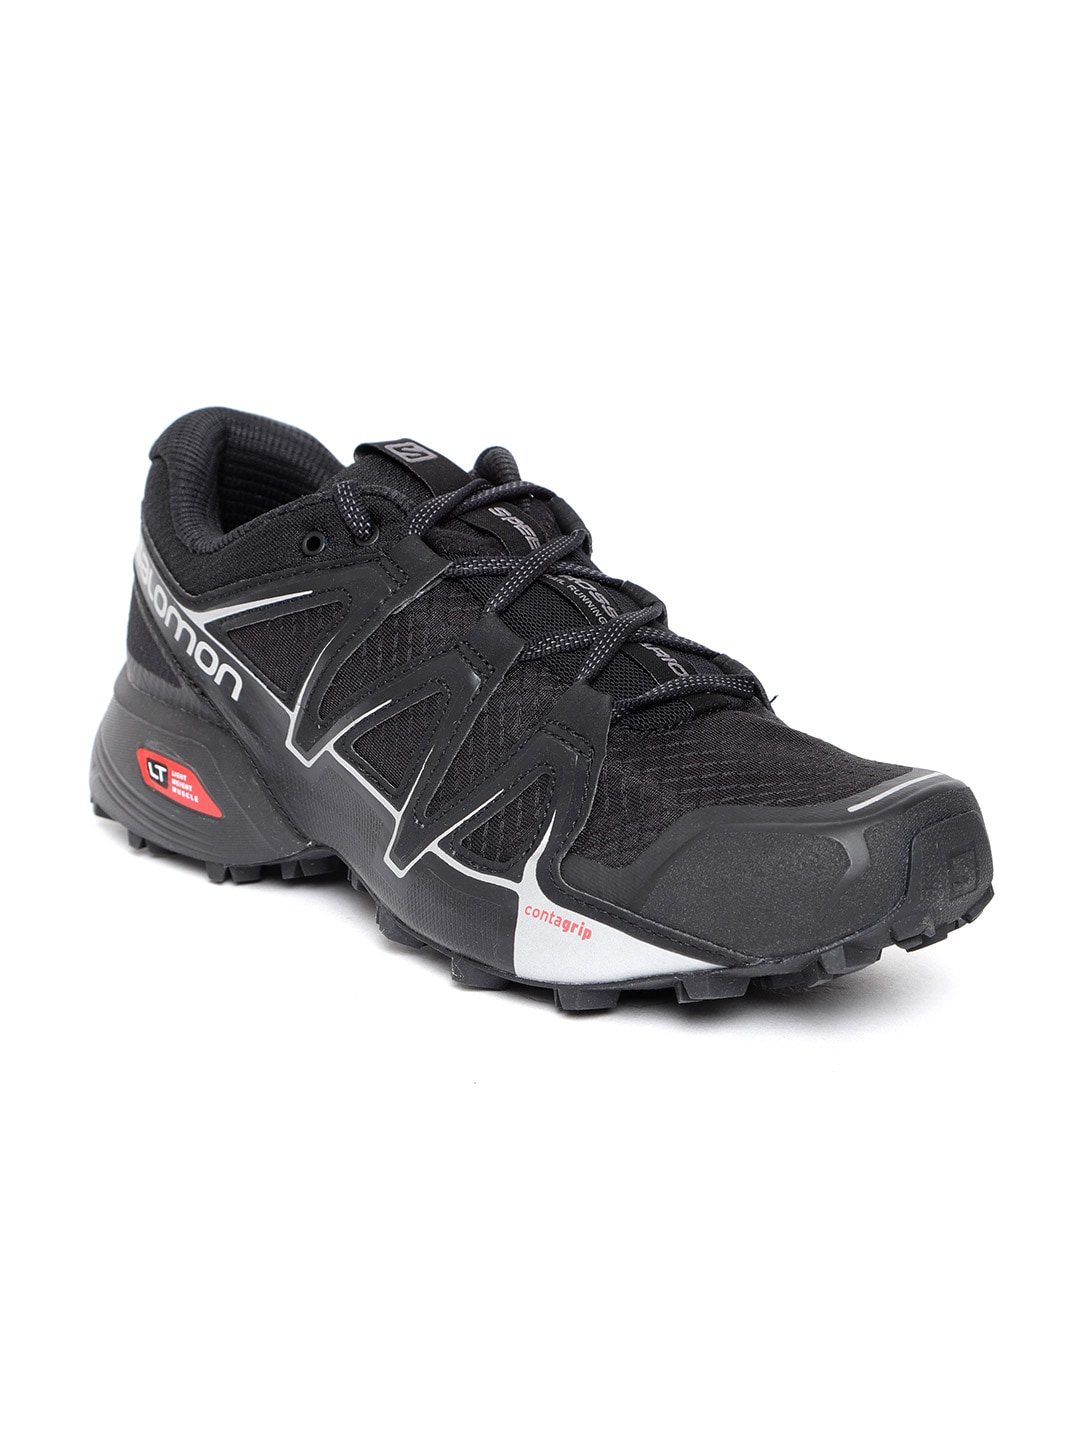 62af63d41cca8 Sports Shoes for Women - Buy Women Sports Shoes Online